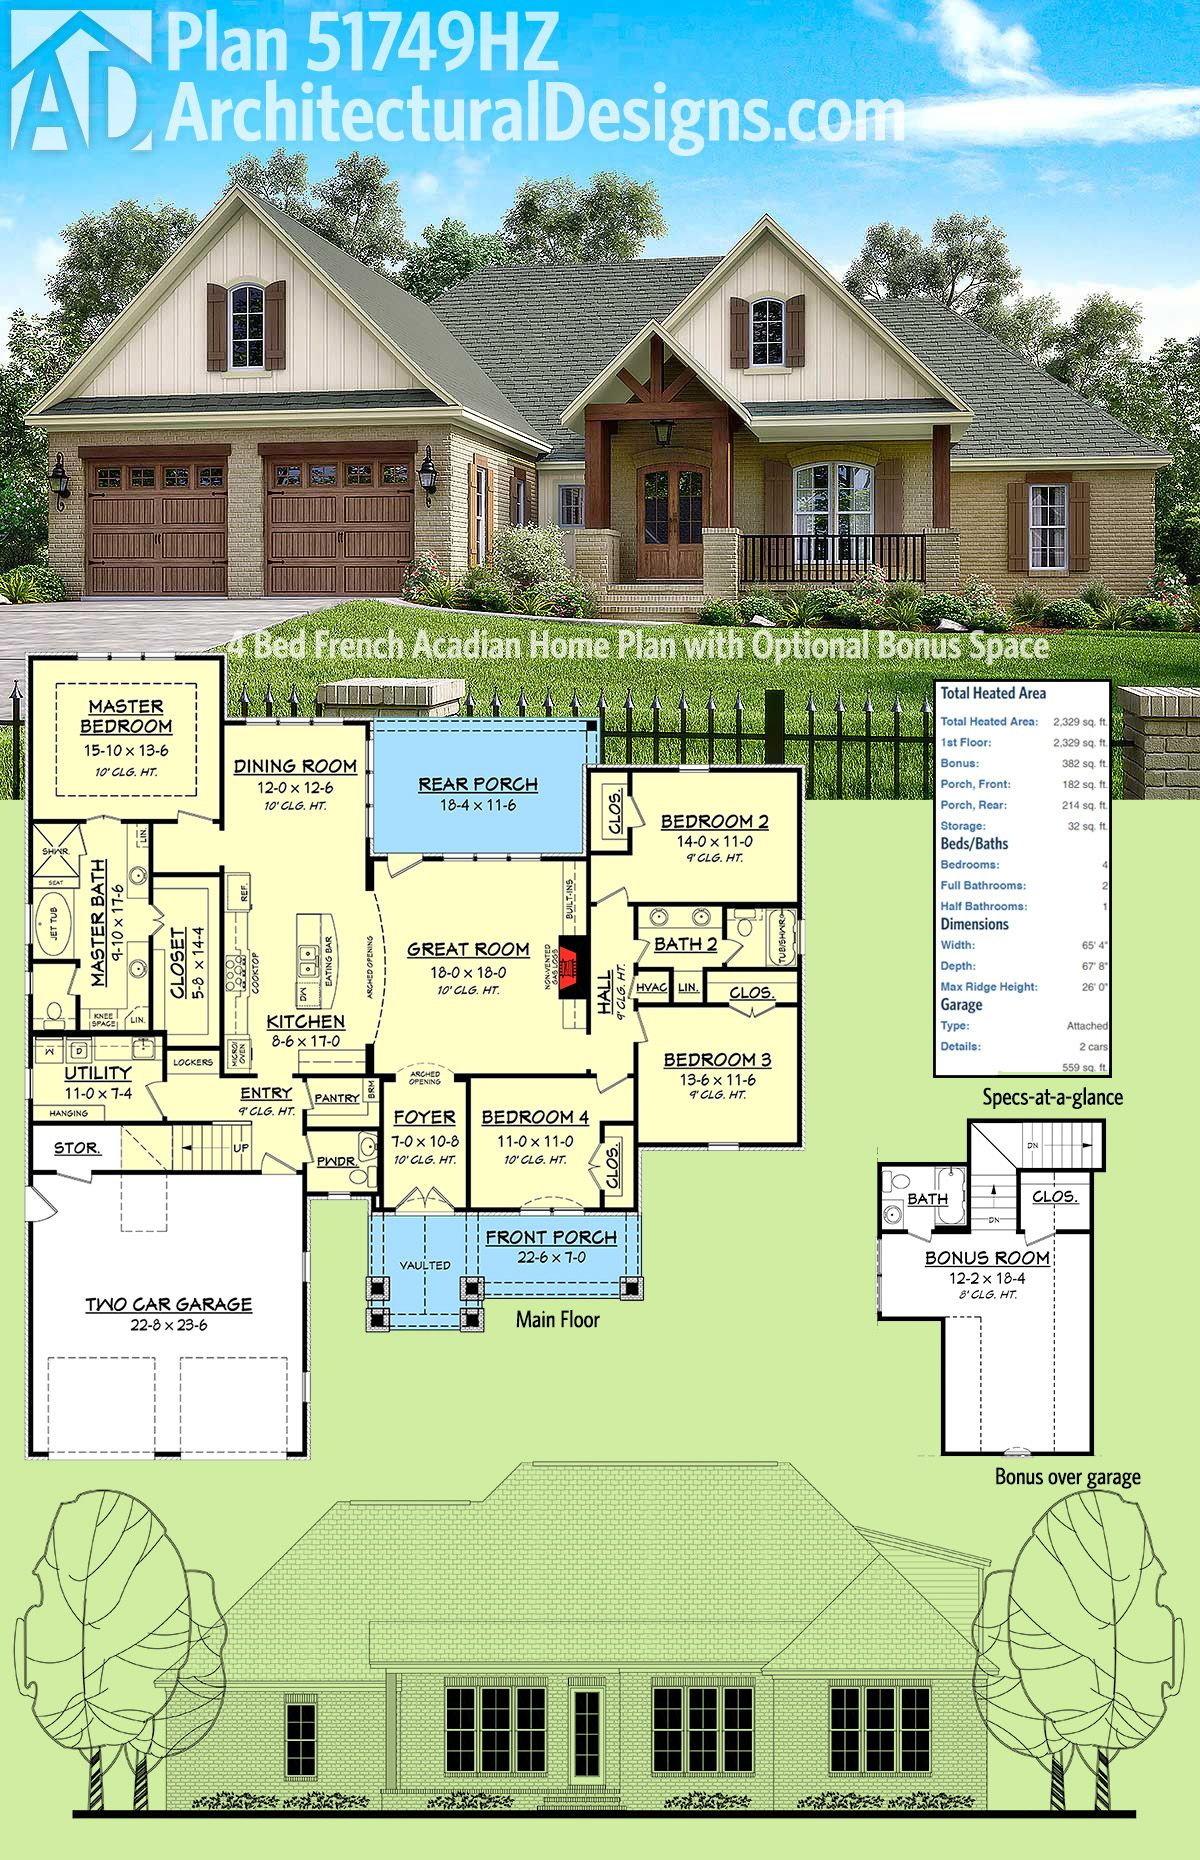 Plan 51749HZ: Four Bed French Acadian Home Plan with Optional Bonus on french acadian style house plans, french country house plans mississippi, french acadian house plans with porch,